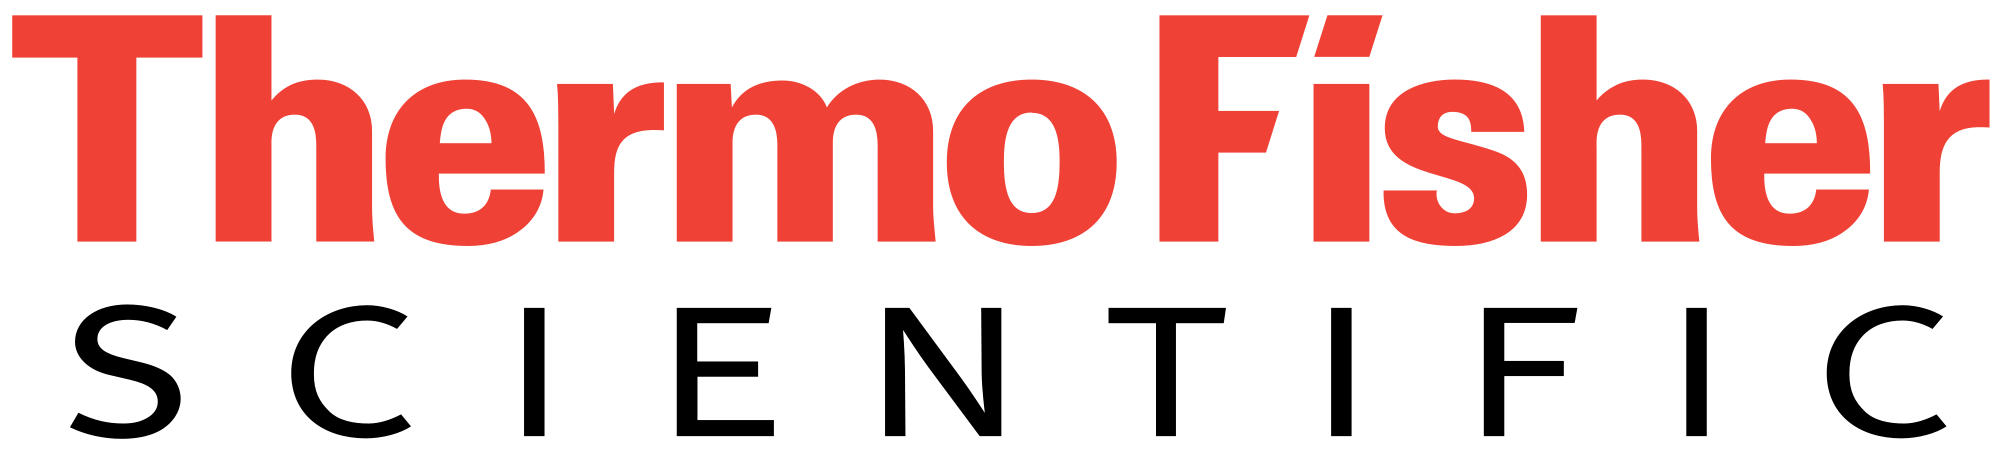 Thermo_Fisher_Scientific_logo.png